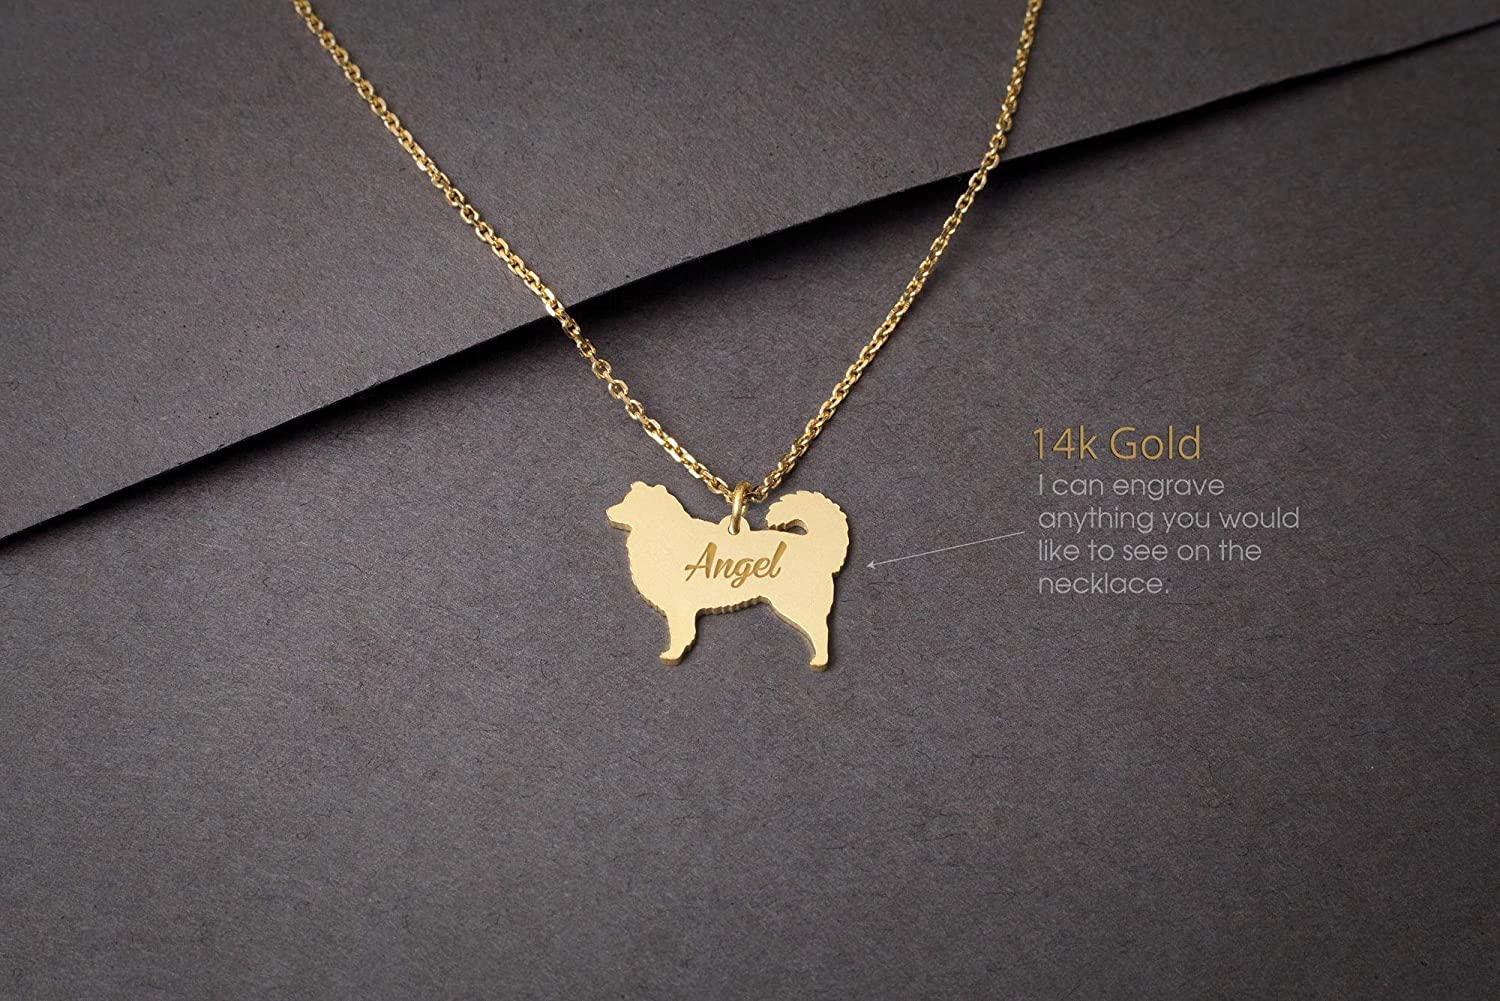 Personalised Necklace Dog breed Jewelry Australian Shepherd Name Jewelry Dog Necklaces AUSTRALIAN SHEPHERD NAME Necklace